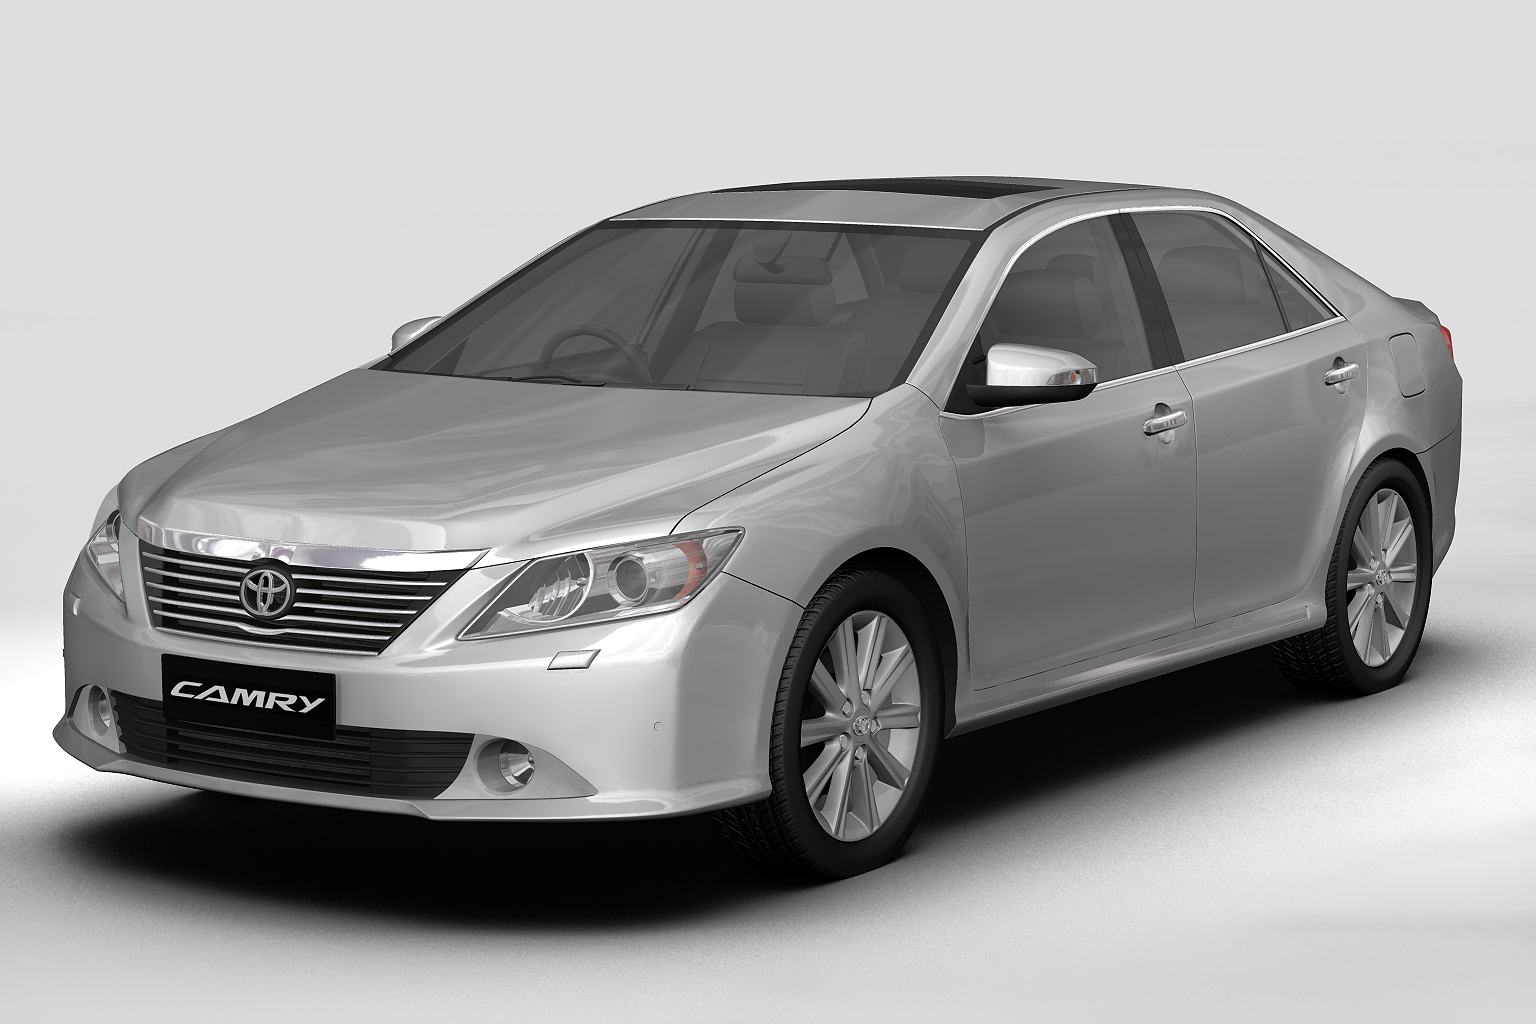 2012 toyota camry (asian) 3d model 3ds max fbx c4d lwo hrc xsi